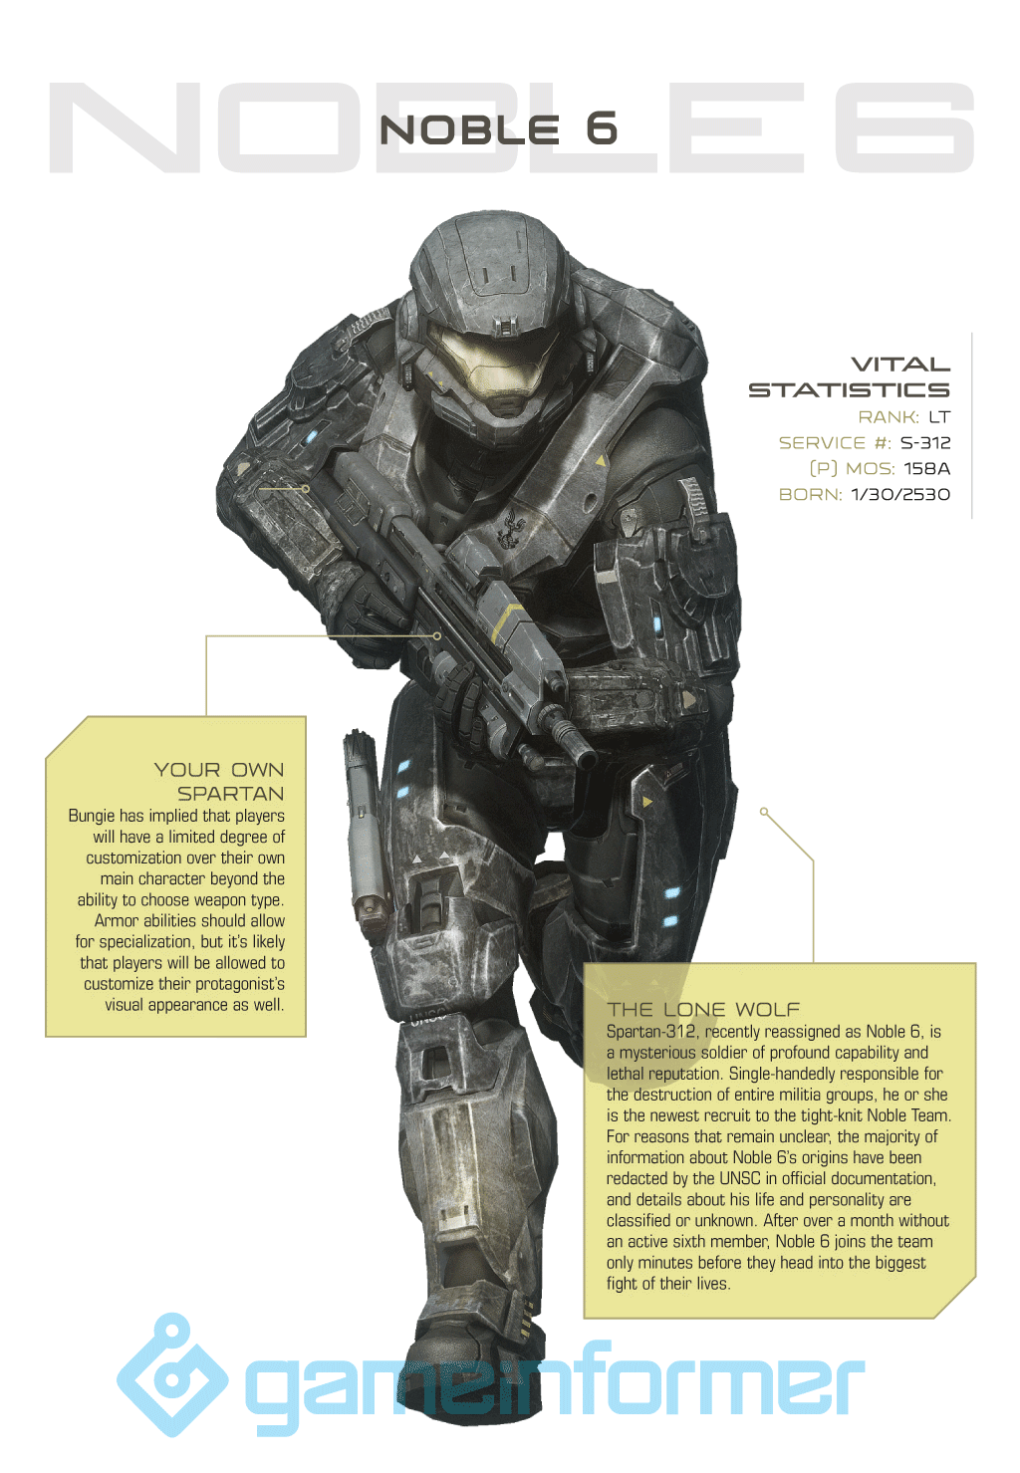 hr9 - am i the only one hyped for halo reach?